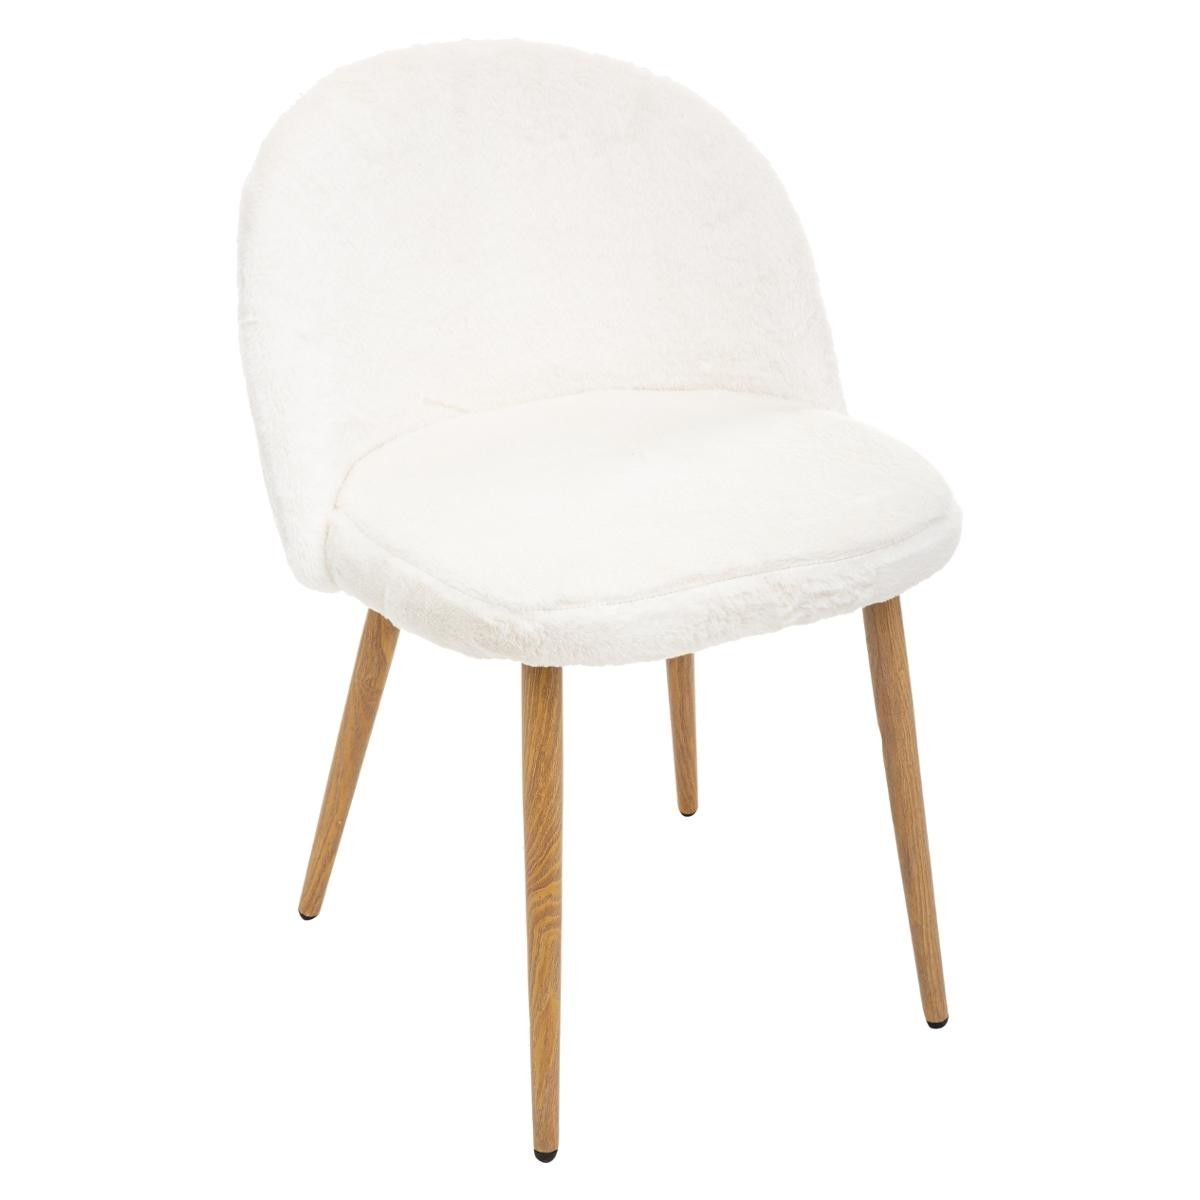 Chaise Fourrure Blanche Nael Atmosphera Fourrure Blanche Chaises Blanches Chaise